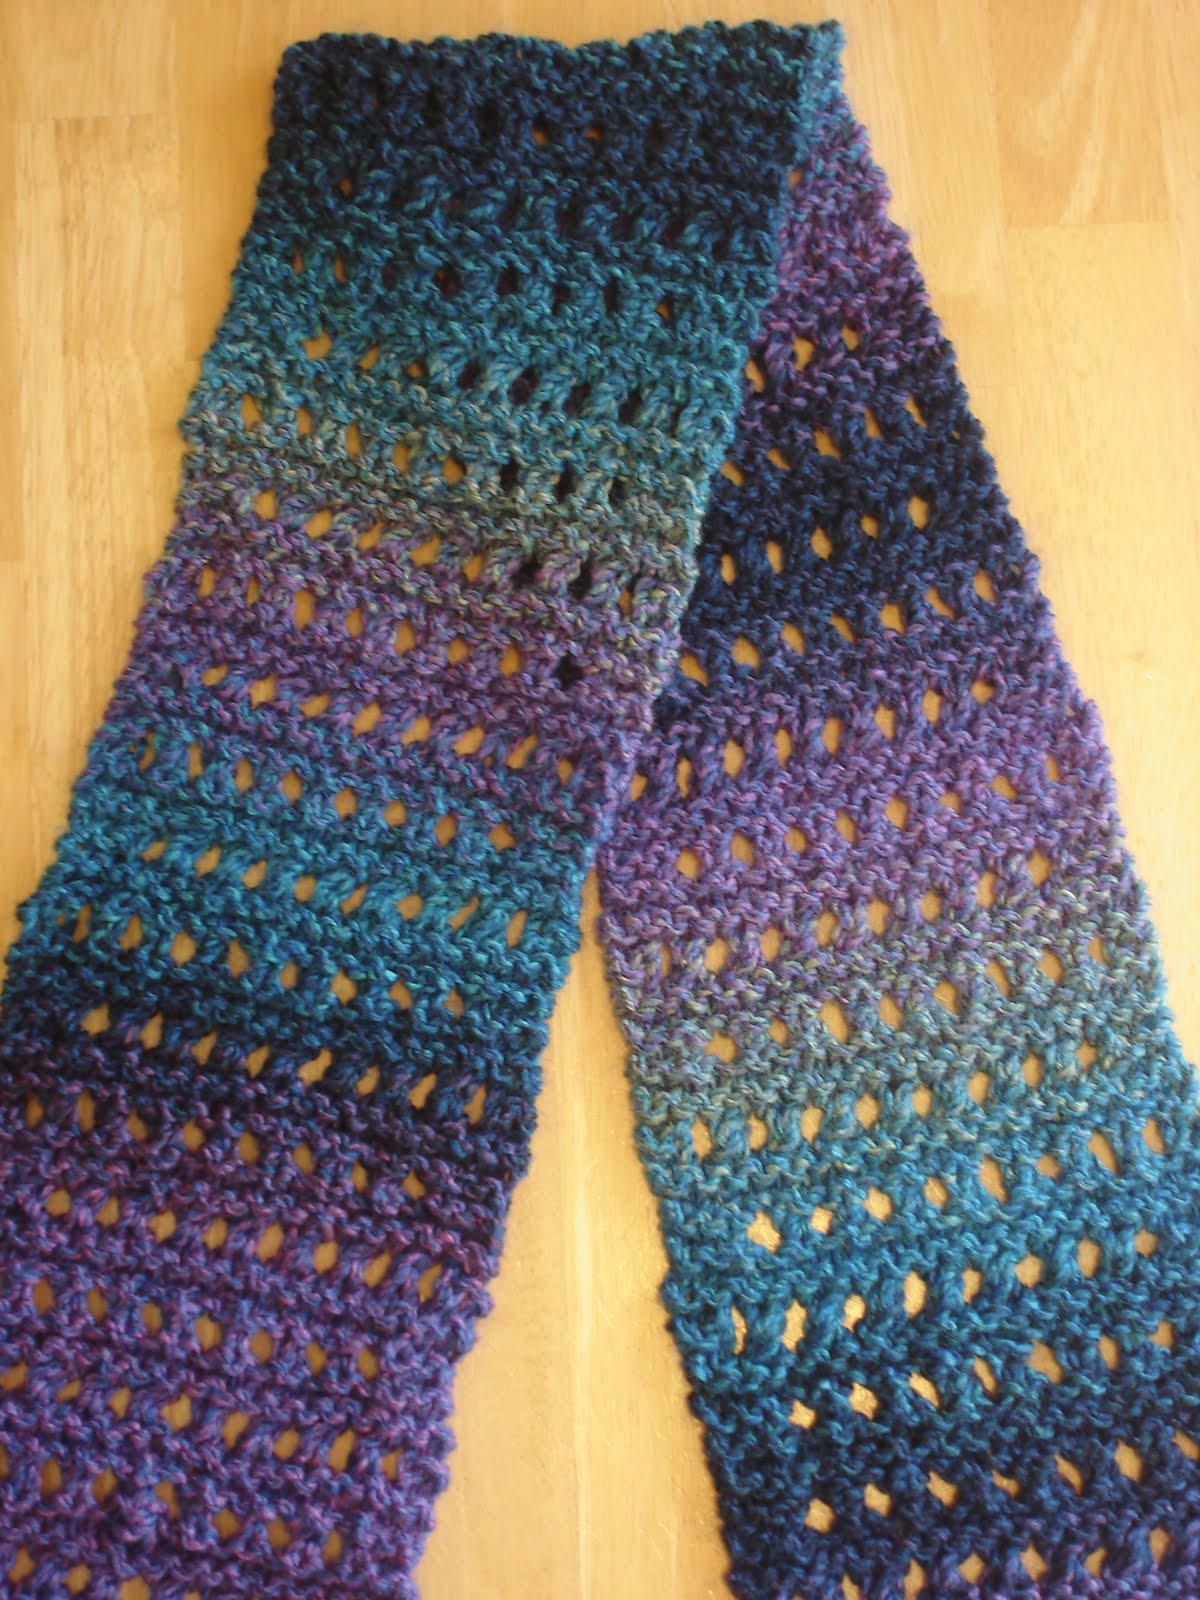 Free Knitting Pattern: Tweedy Eyelet Scarf - Knittting Crochet